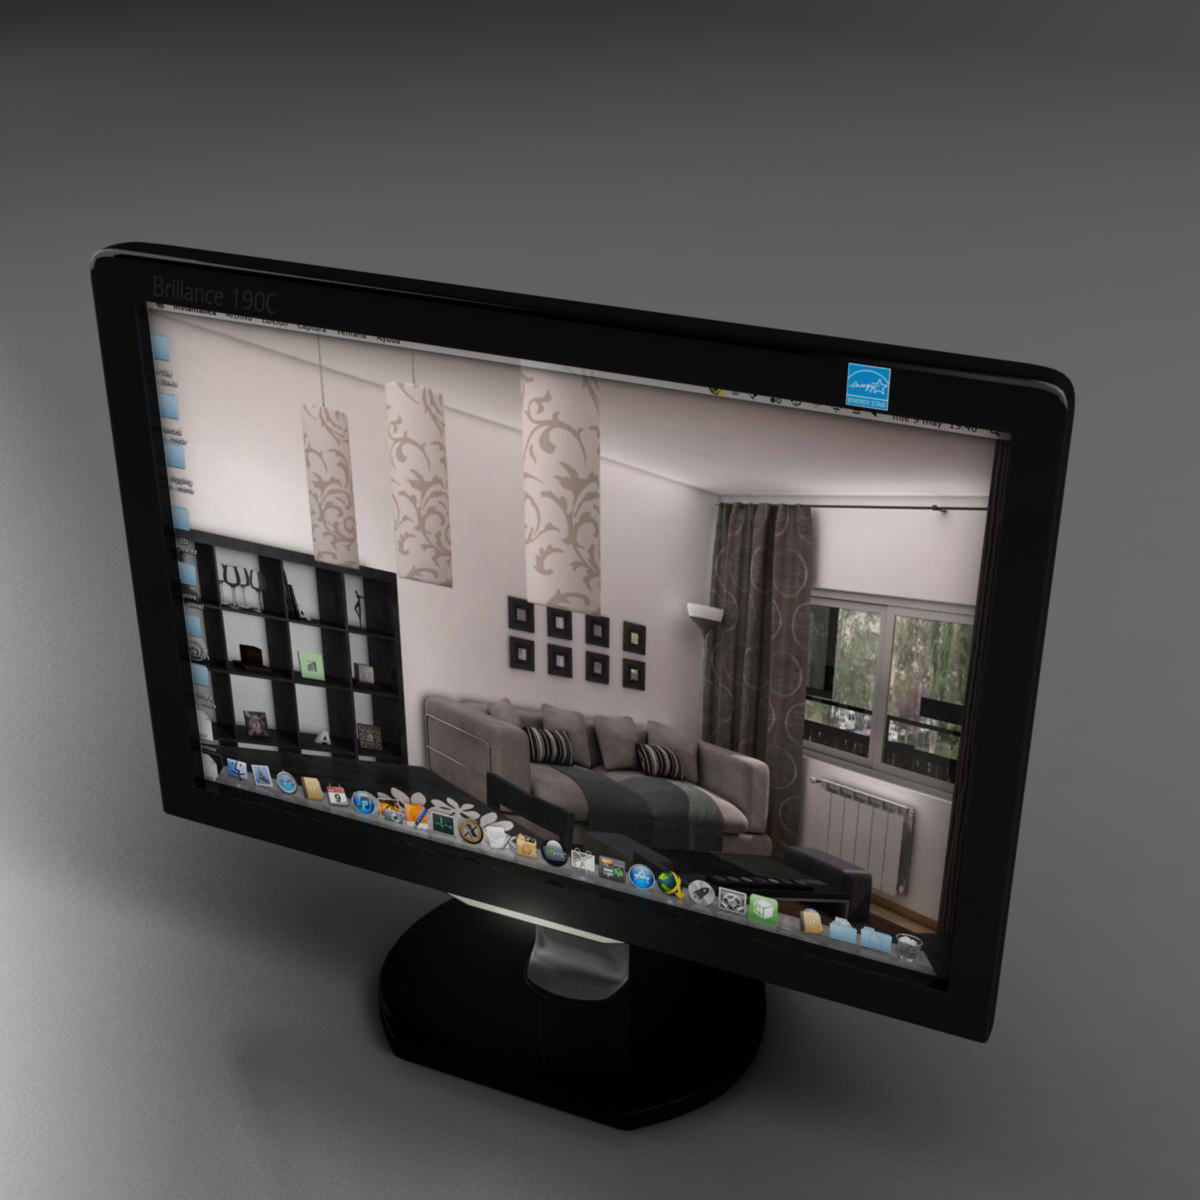 pantalla tft 3d model 3ds max fbx mb obj 155956